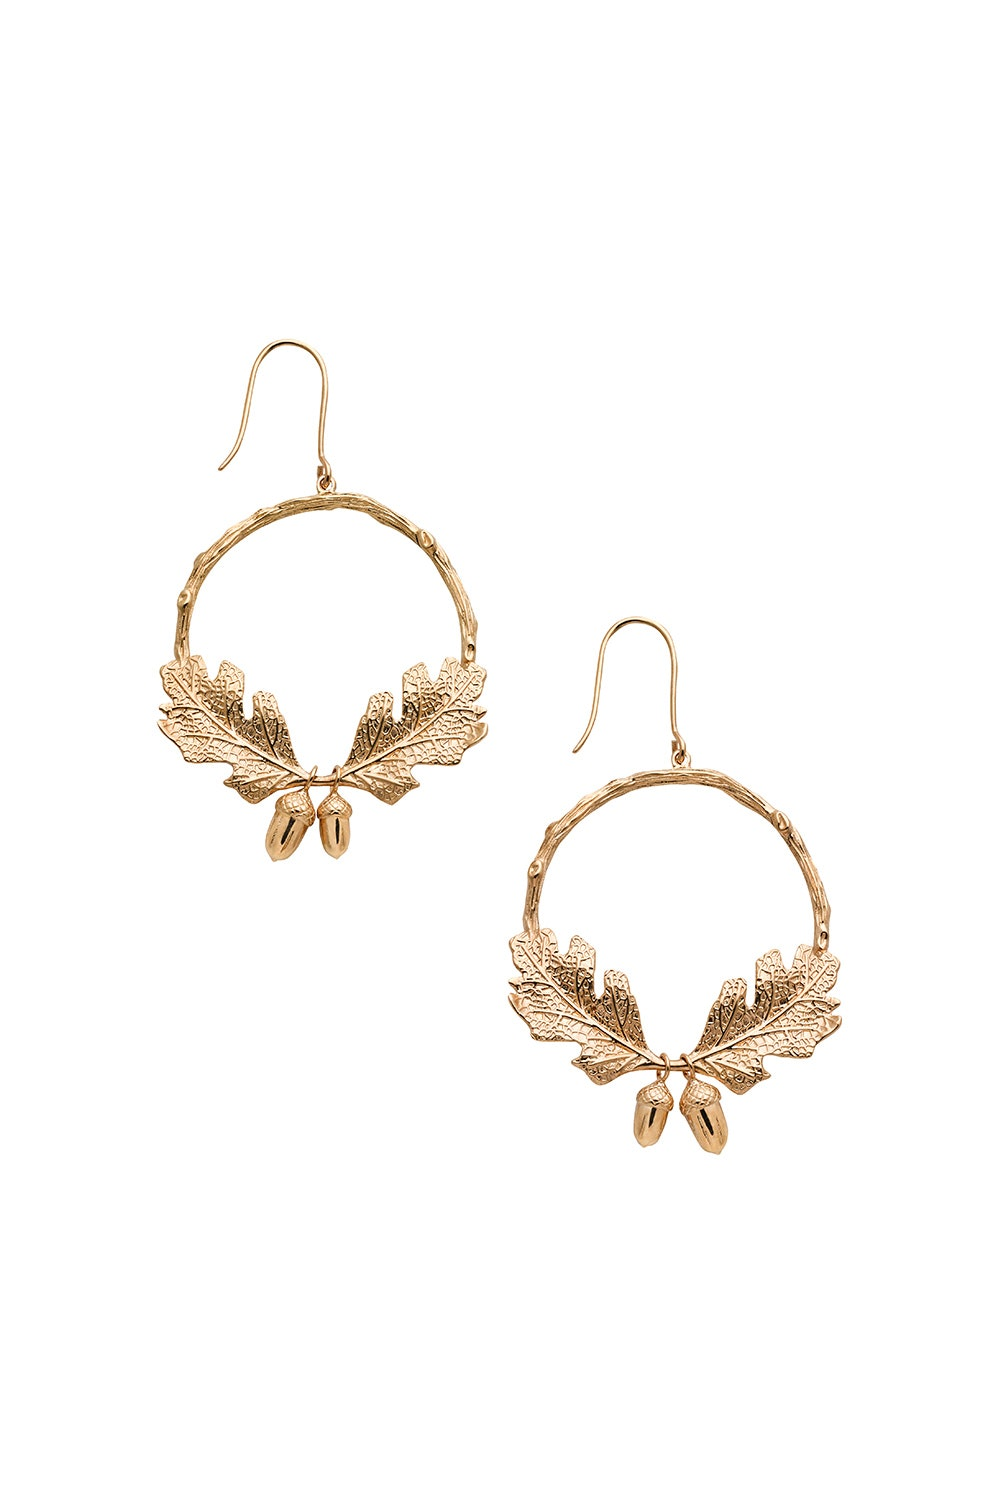 acorn-and-leaf-wreath-earrings-gold-plated-kw343hgp-gold-plated-front-0367038001551386704_1551386652